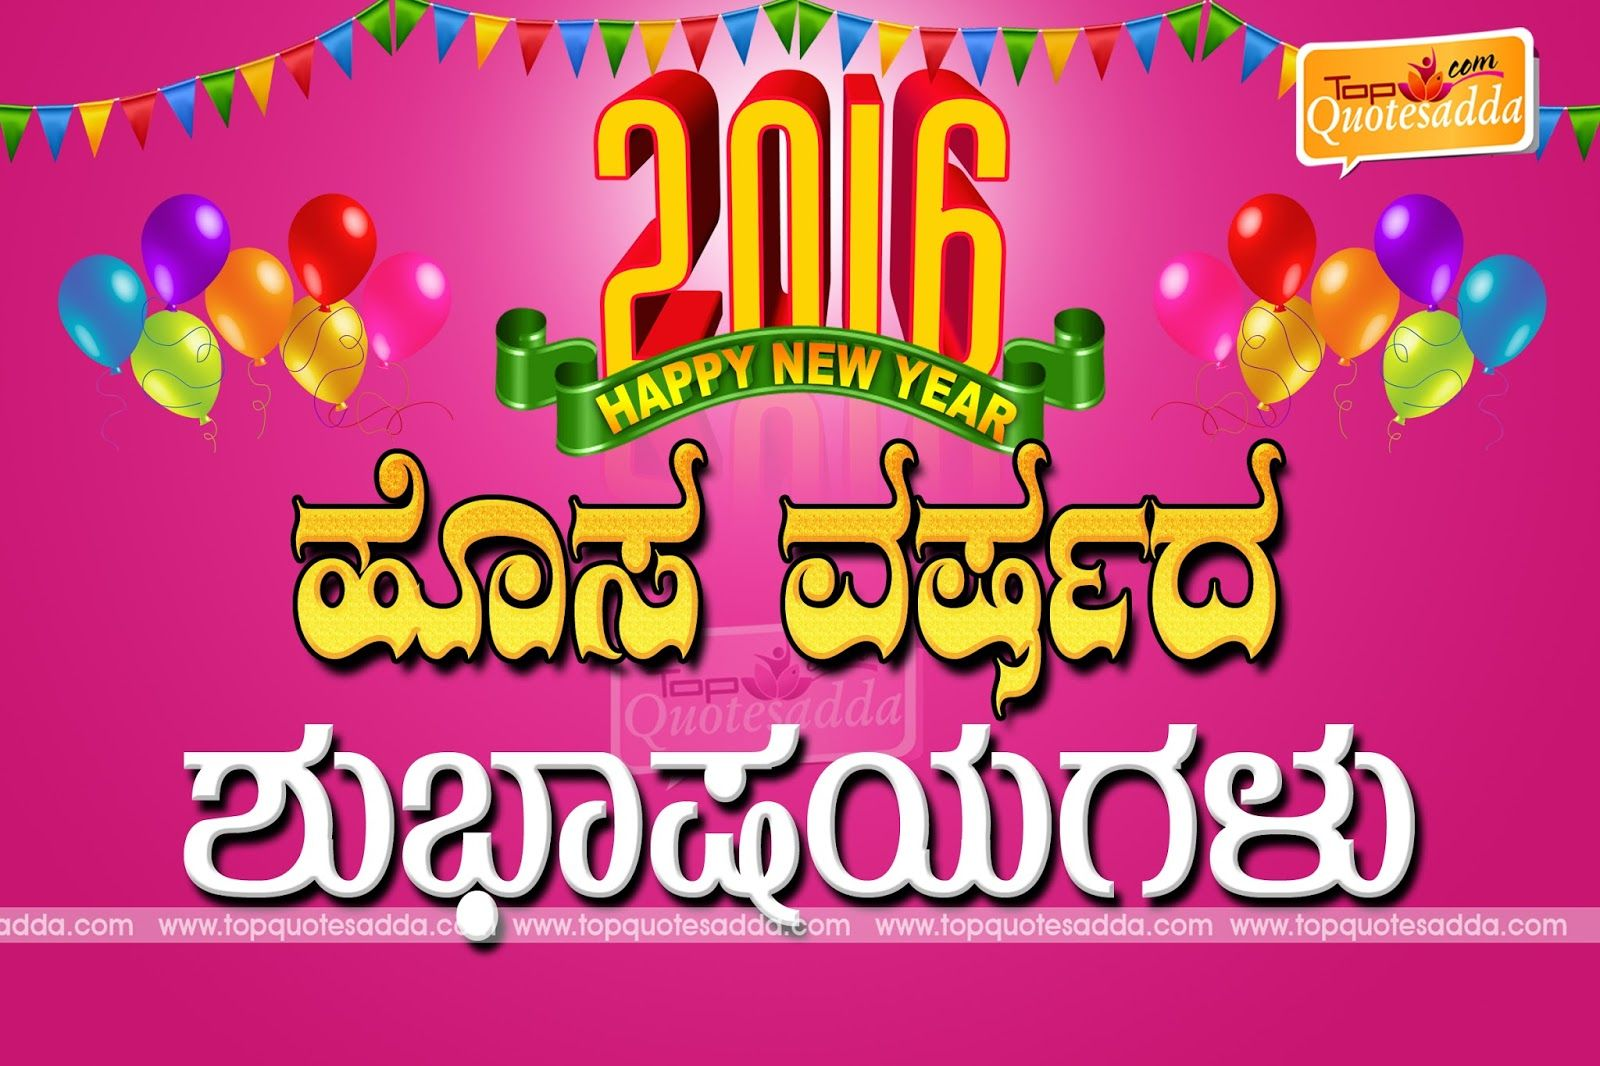 2016 happy new year wishes in kannada advance happy new year quotes about new year